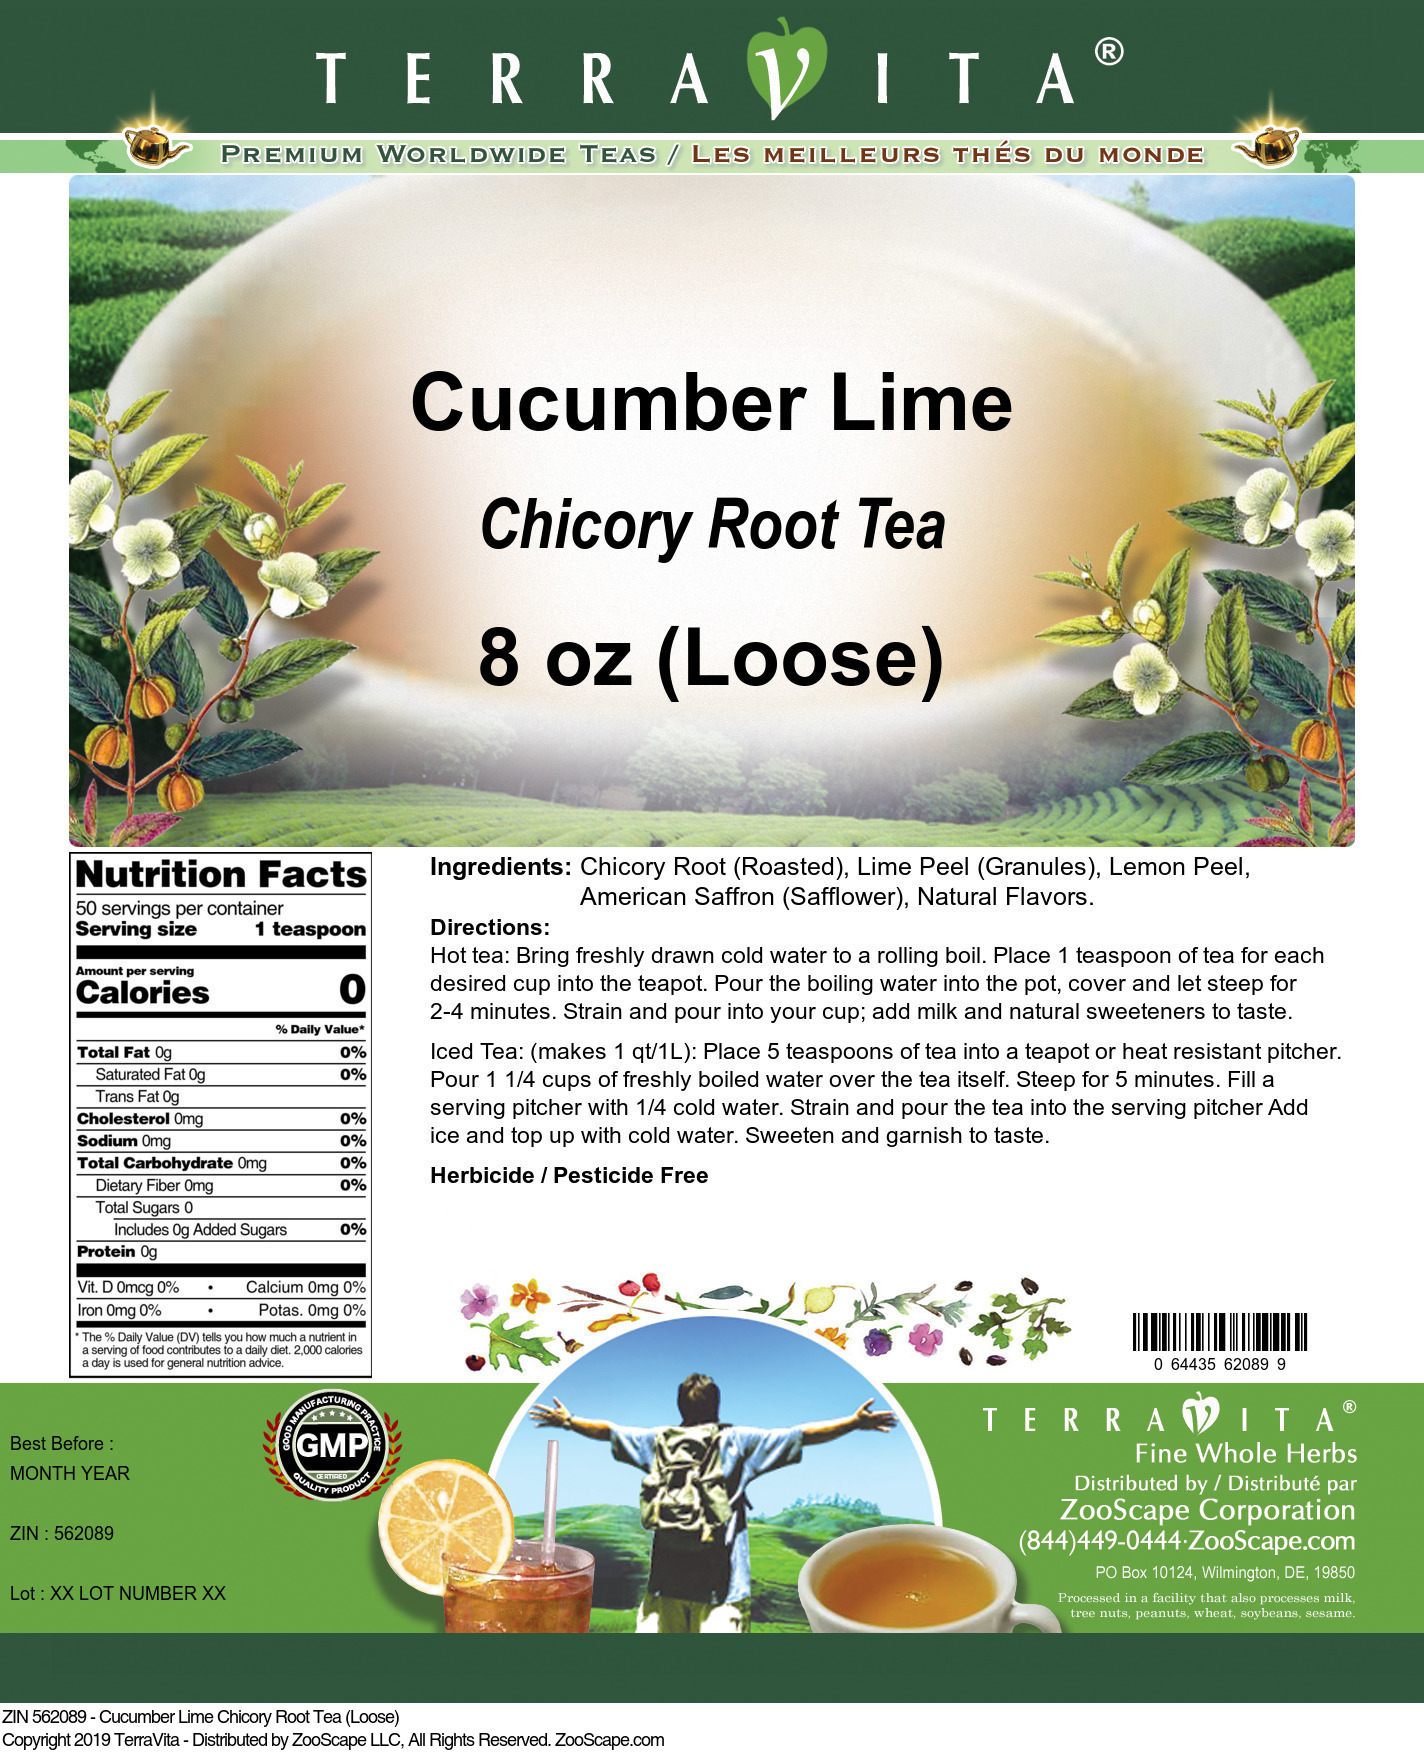 Cucumber Lime Chicory Root Tea (Loose)